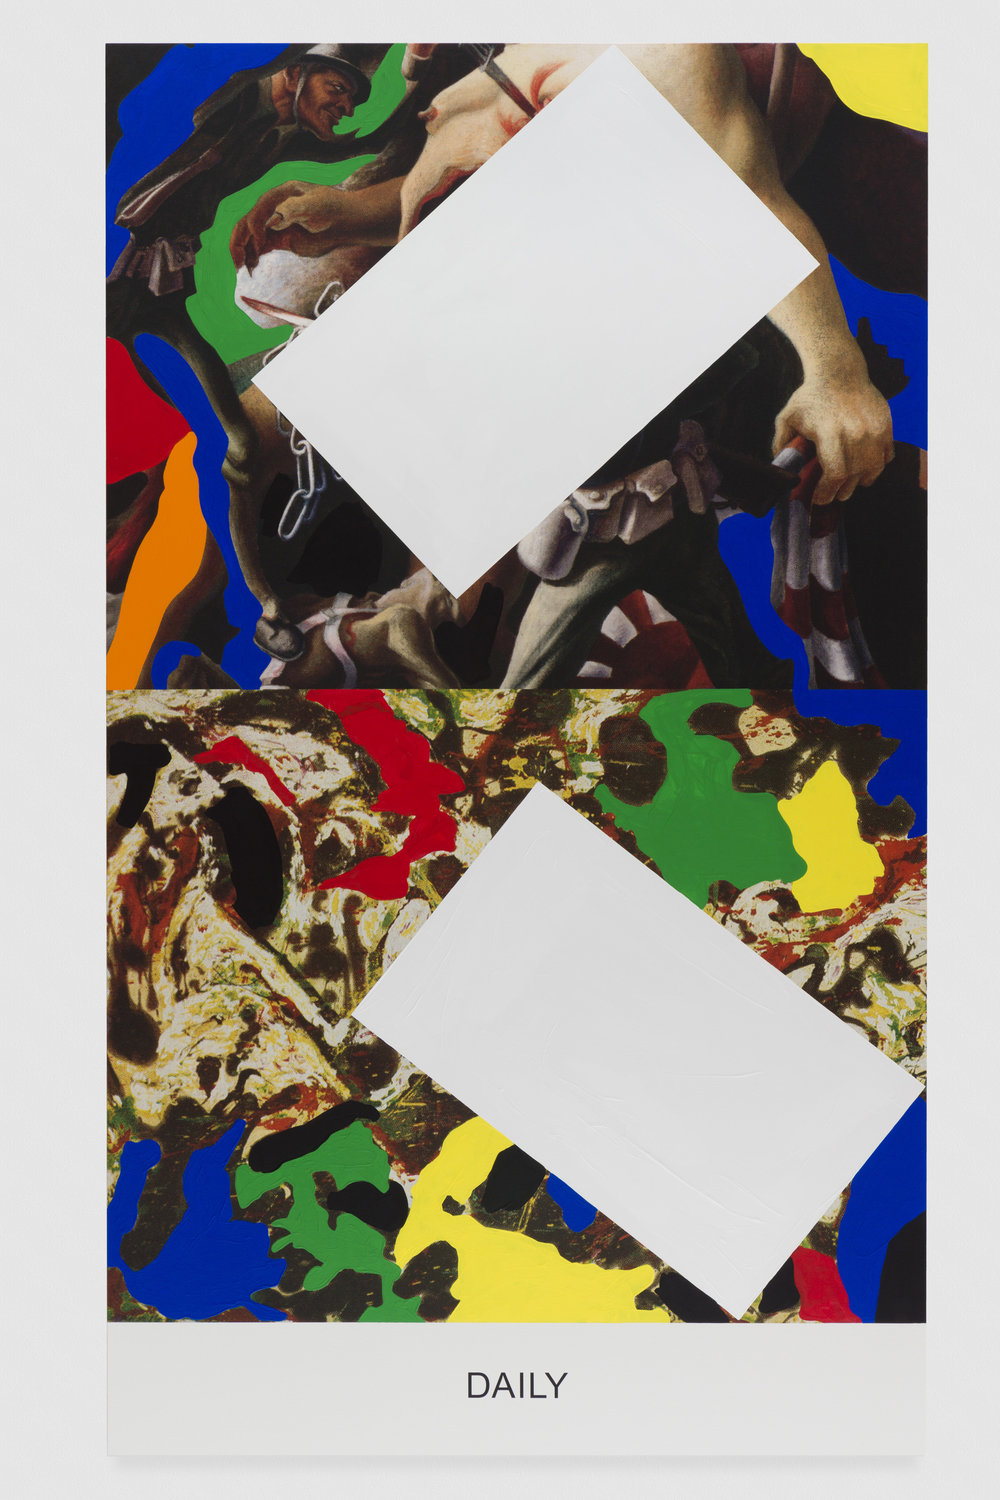 Pollock/Benton: Daily, 2016. Photo credit: Joshua White, all images are courtesy of John Baldessari and the Marian Goodman Gallery